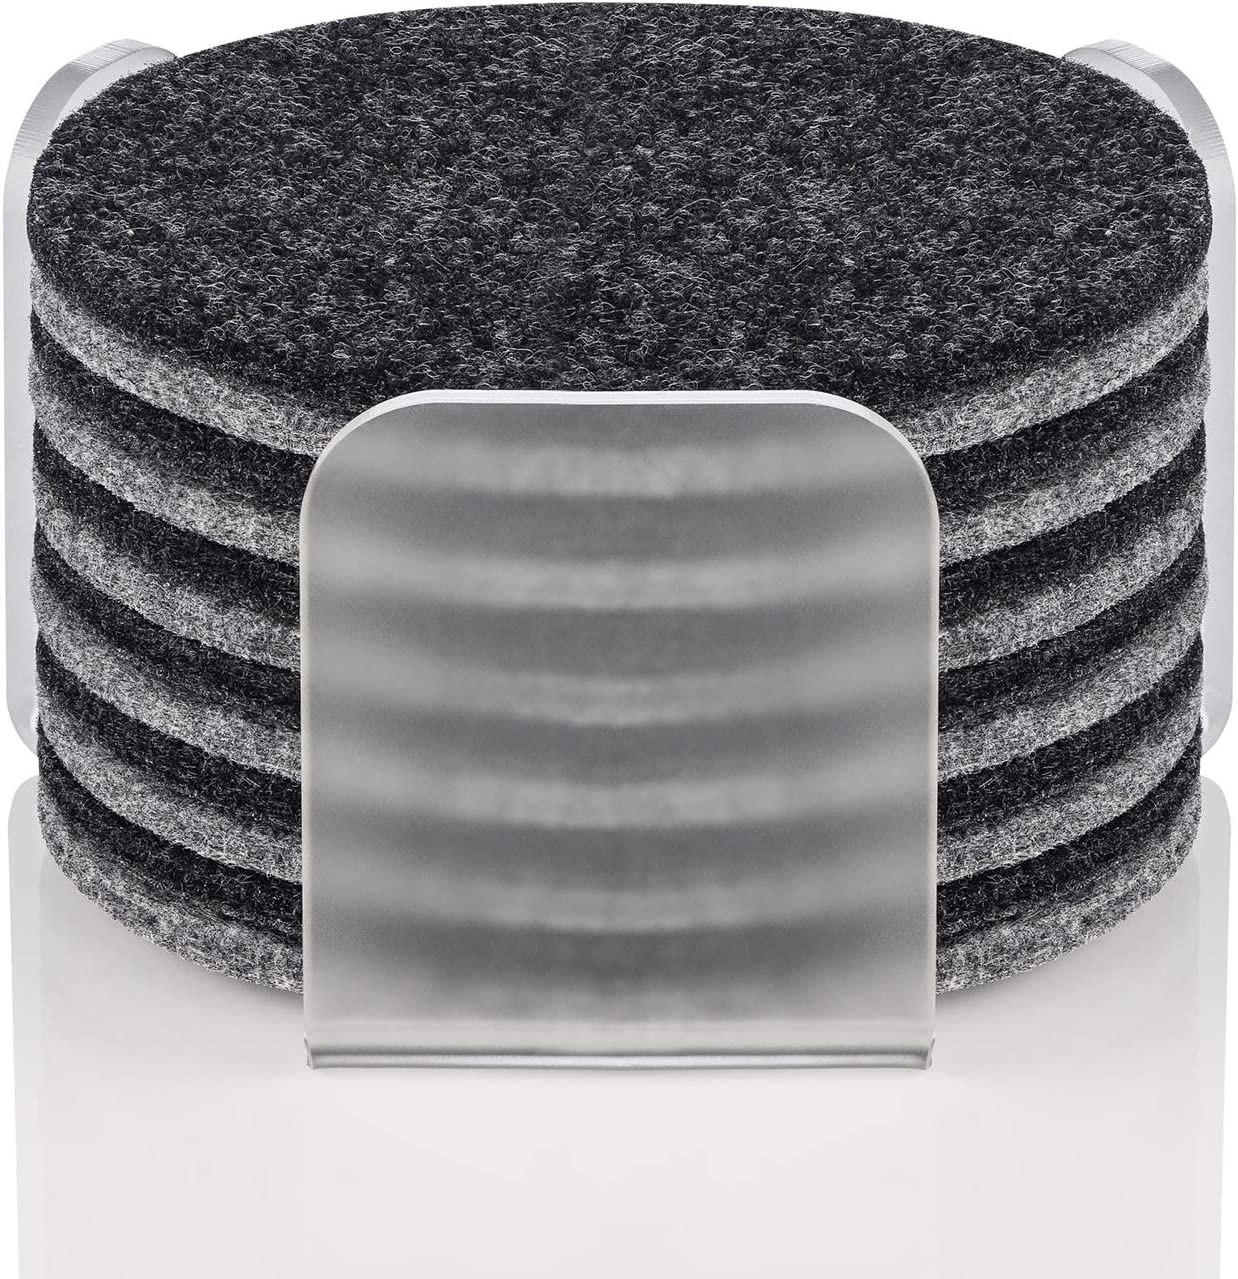 Coasters for Drinks Set of 12, Absorbent Felt Coasters with Acrylic Holder, Premium Package, Perfect Housewarming Gift Idea, Protects Furniture, Table (Round, Charcoal/Gray)